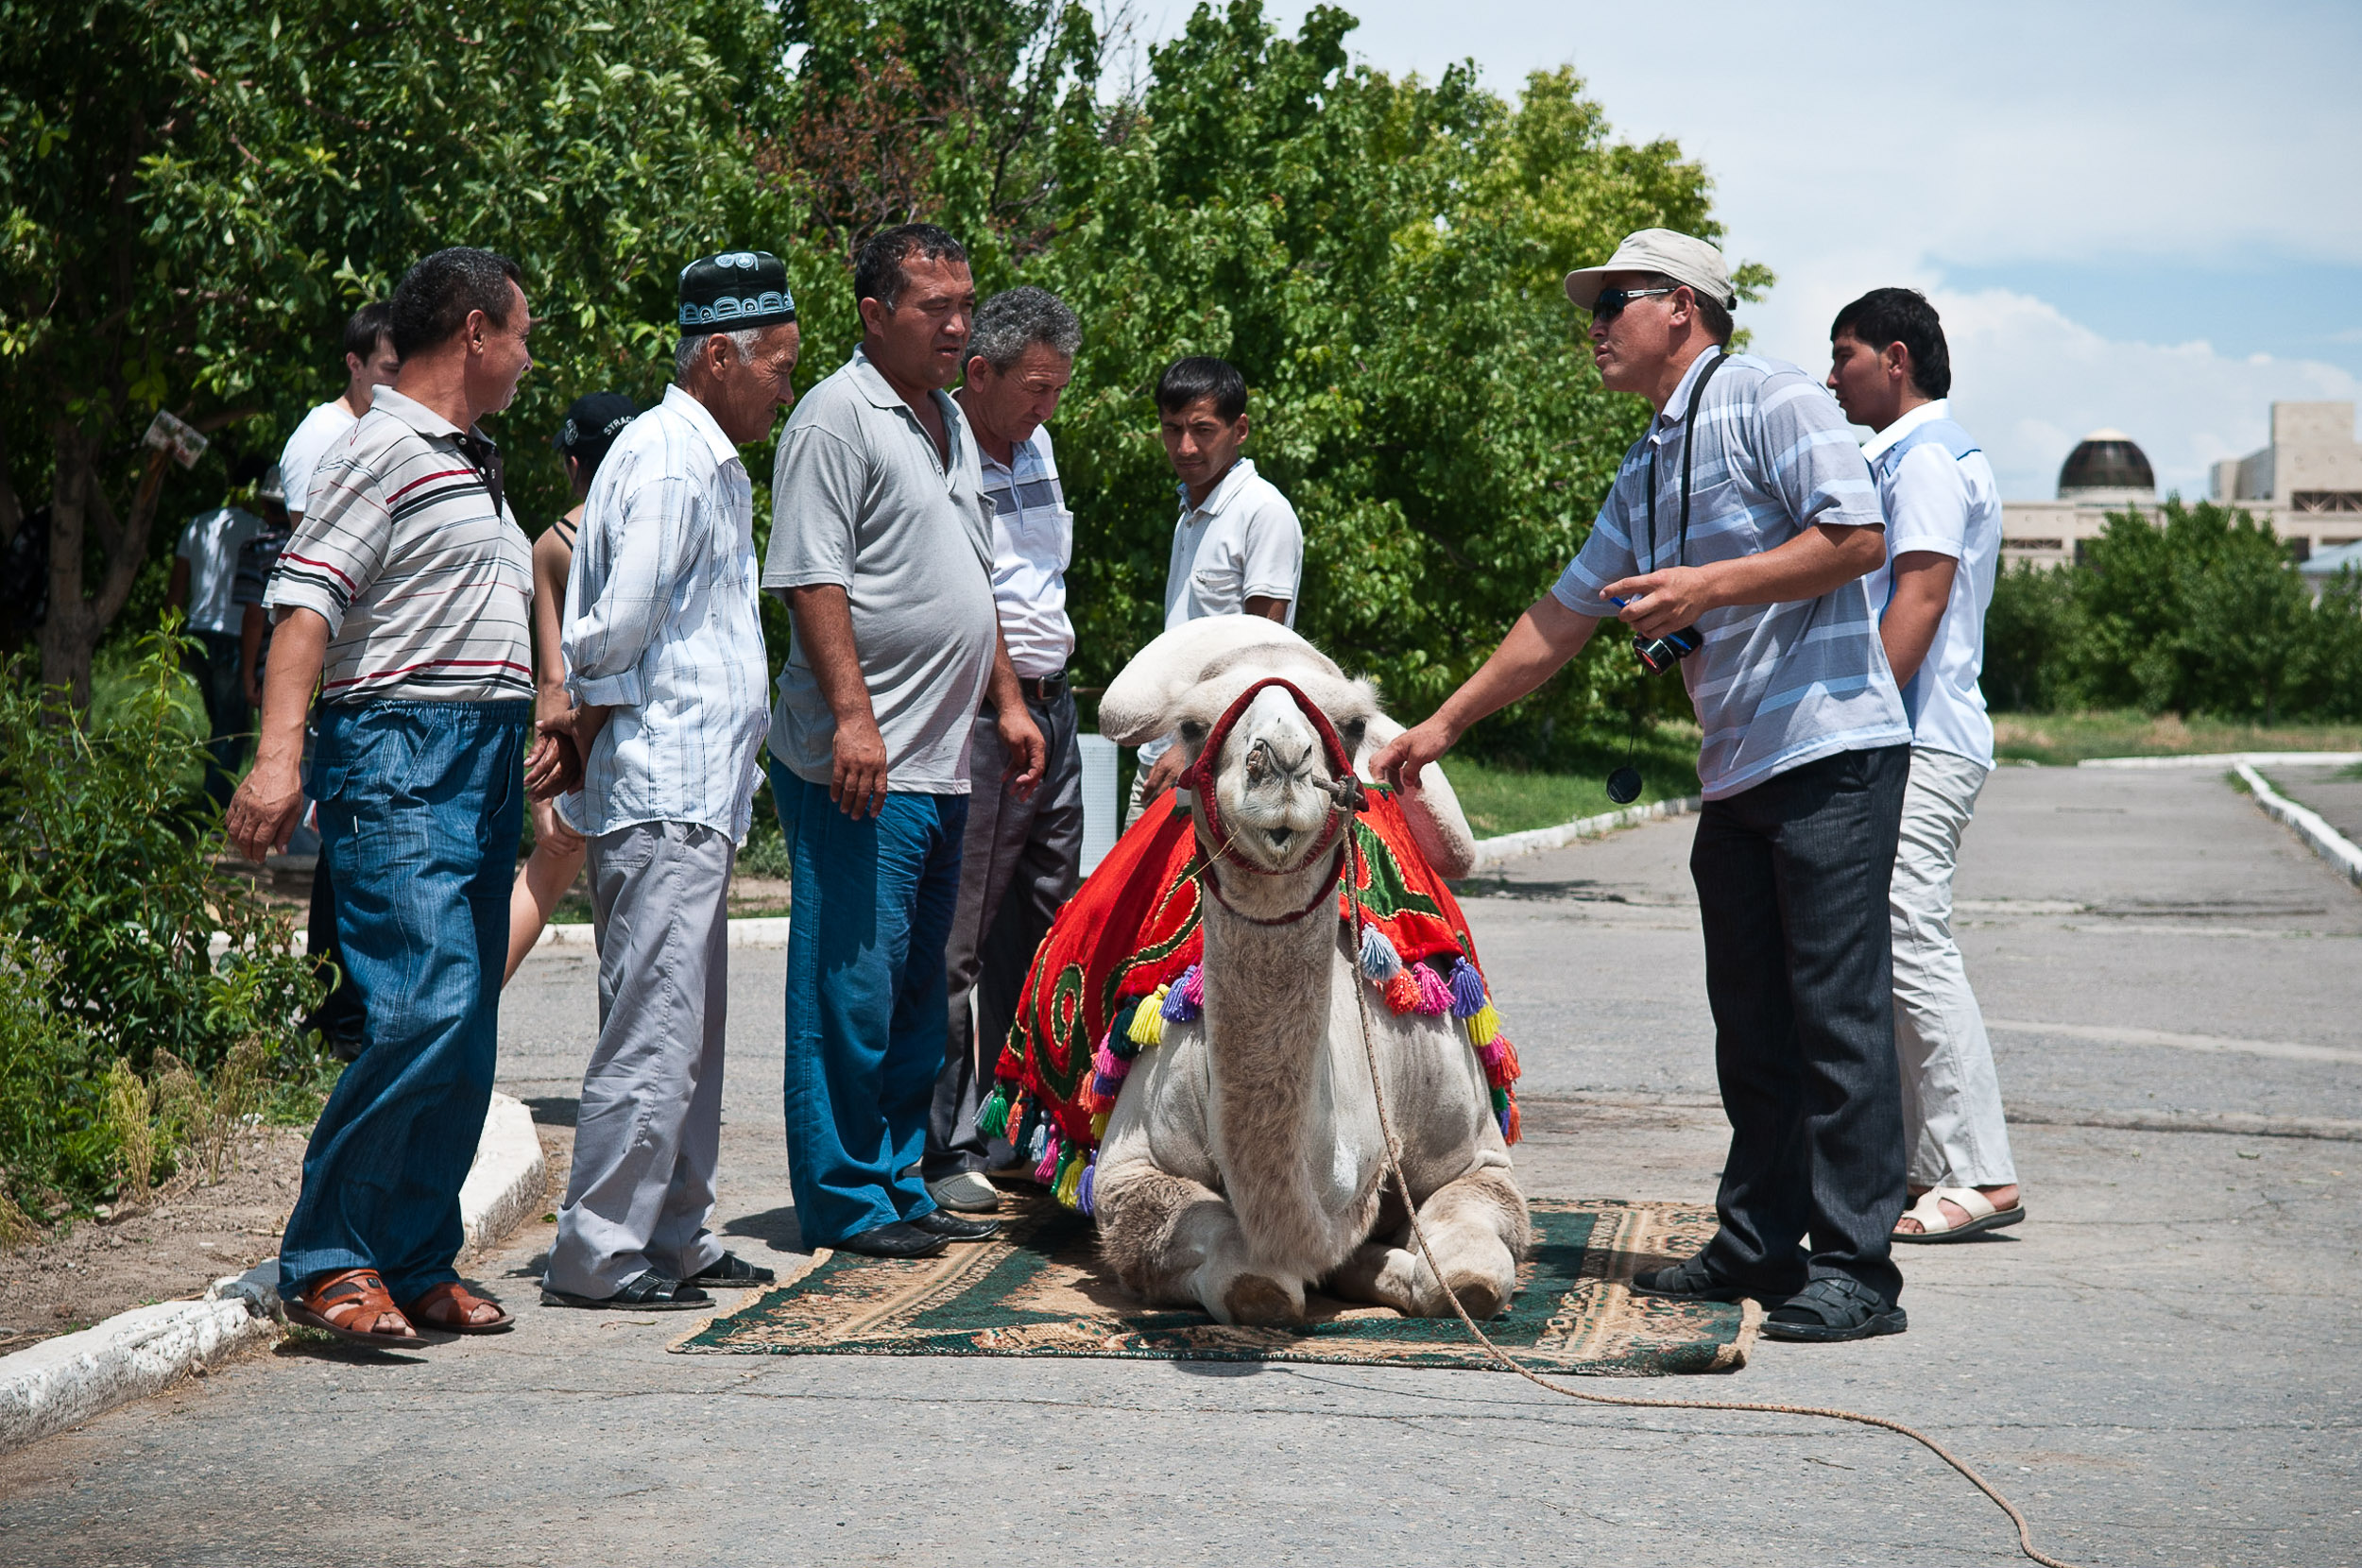 Tourists crowding around a camel, Turkistan, Kazakhstan.